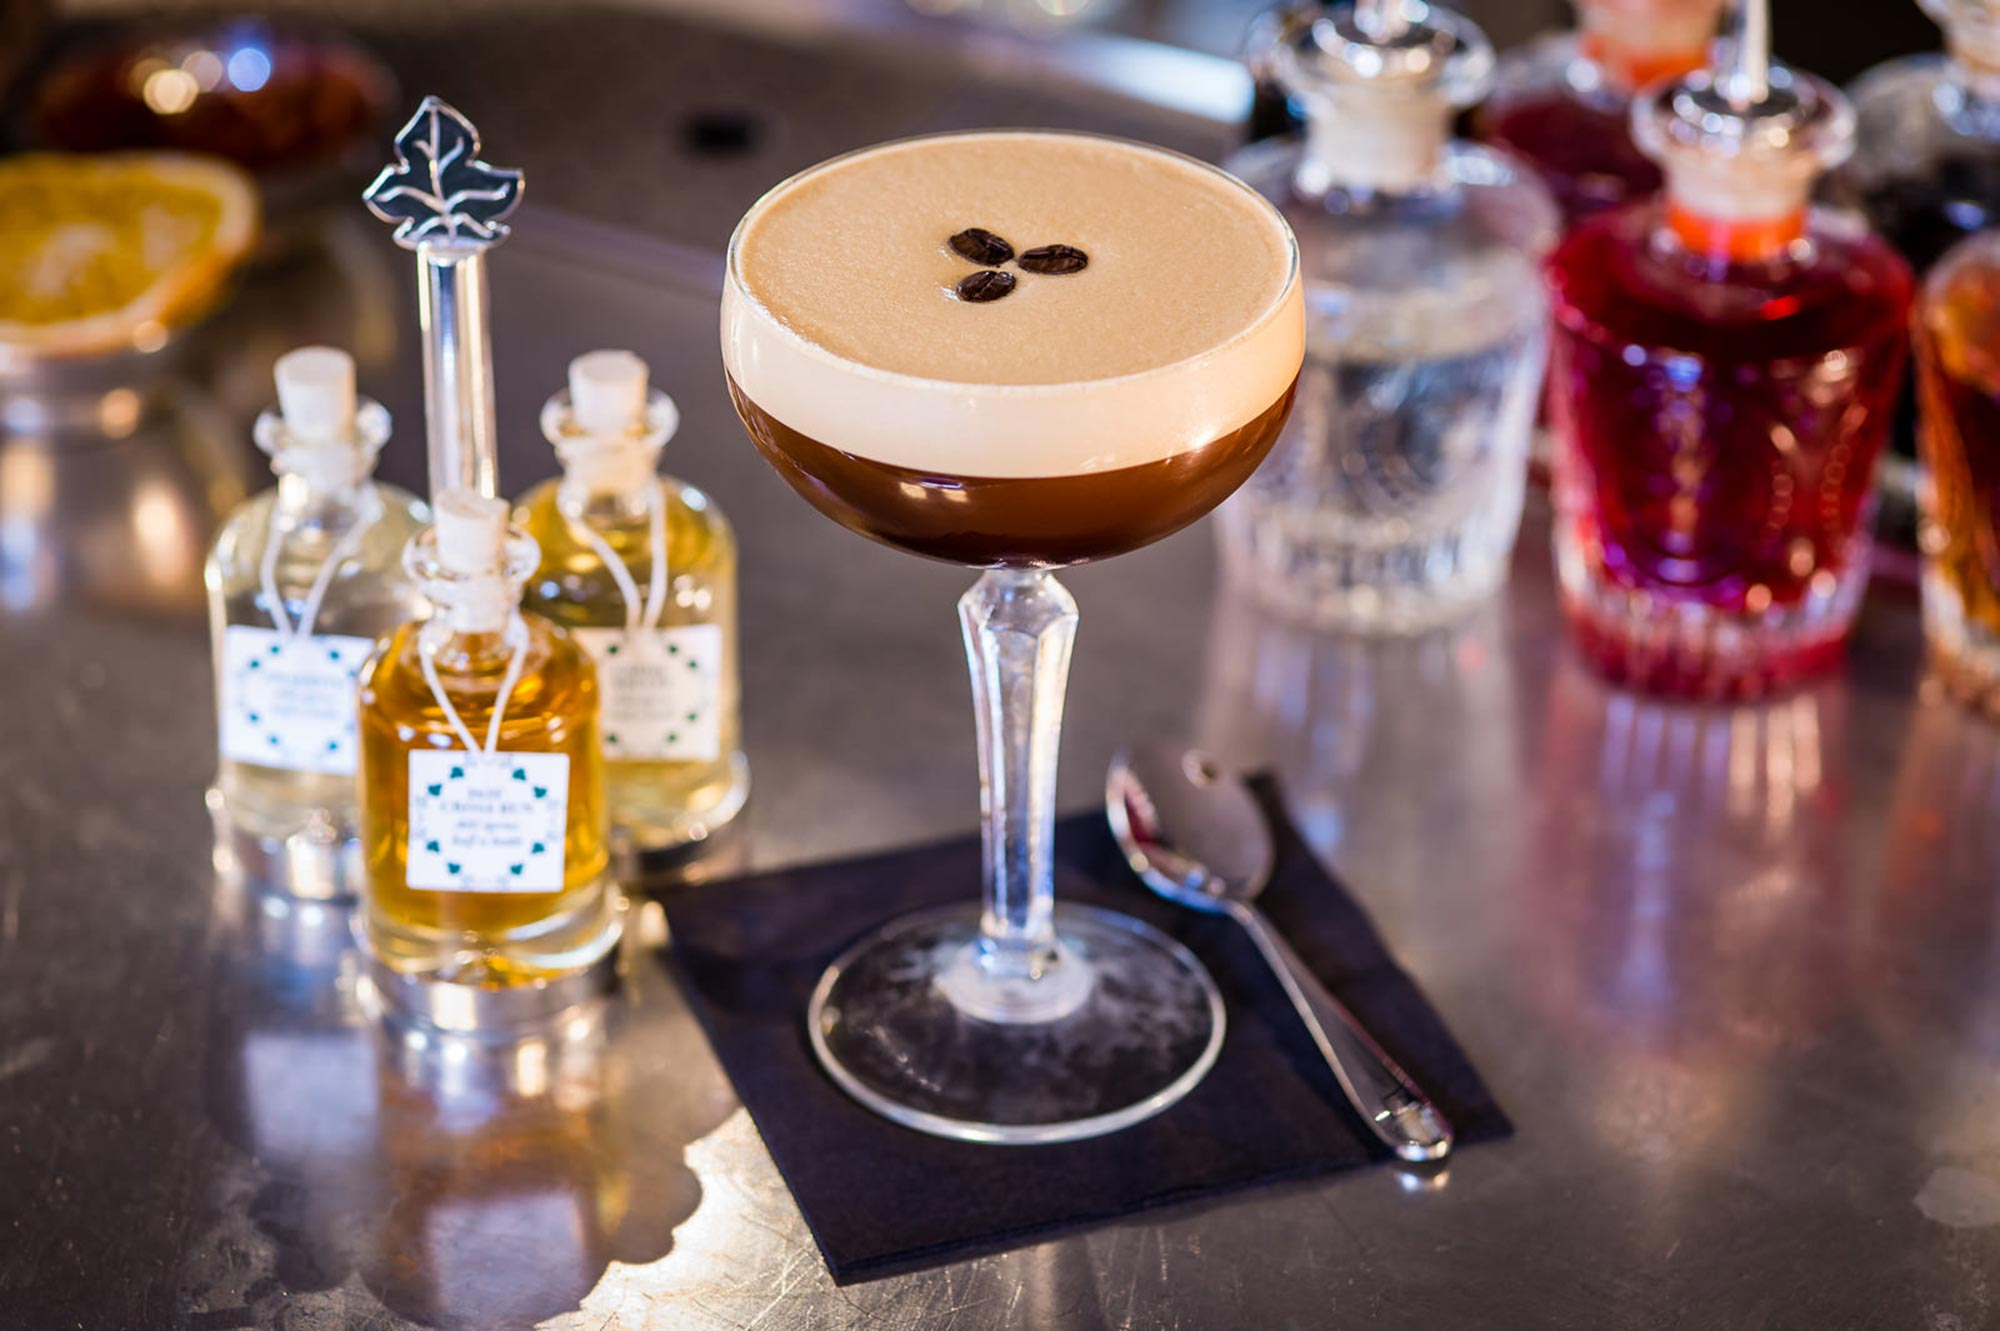 Cocktails in Bath at The Ivy Bath Brasserie - The Ivy Collection Espresso Martini and Infusions - The Ivy Bath Brasserie